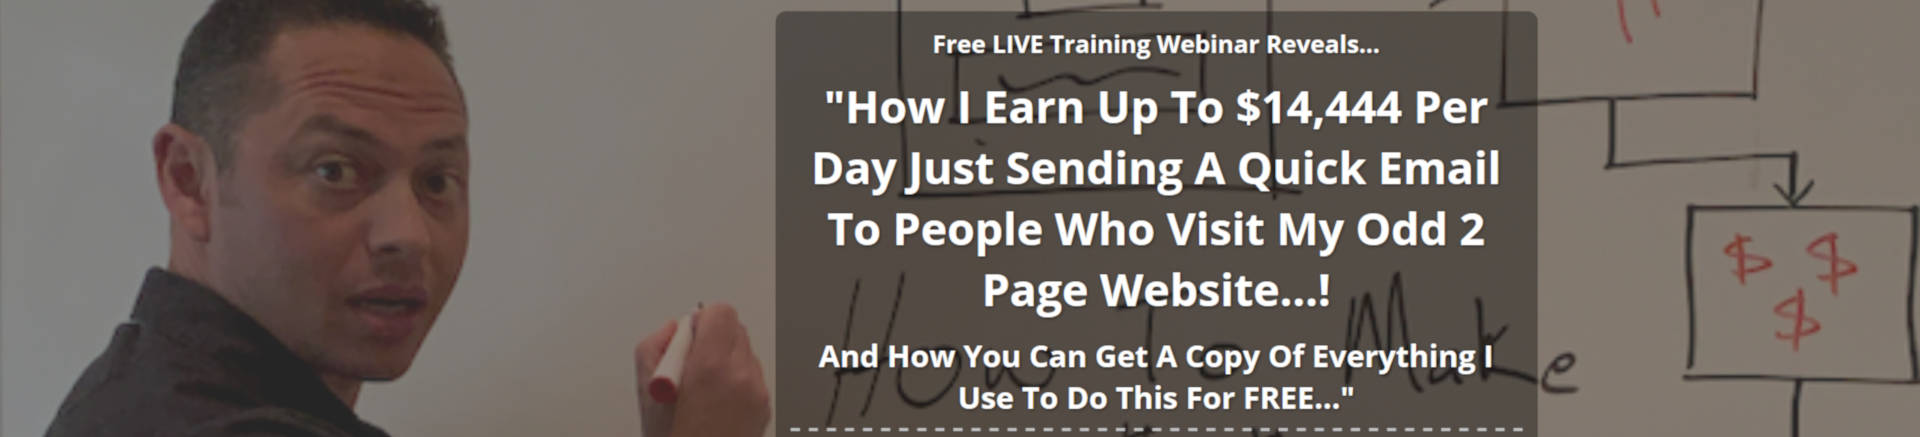 Training Program  1k A Day Fast Track Discounts 2020